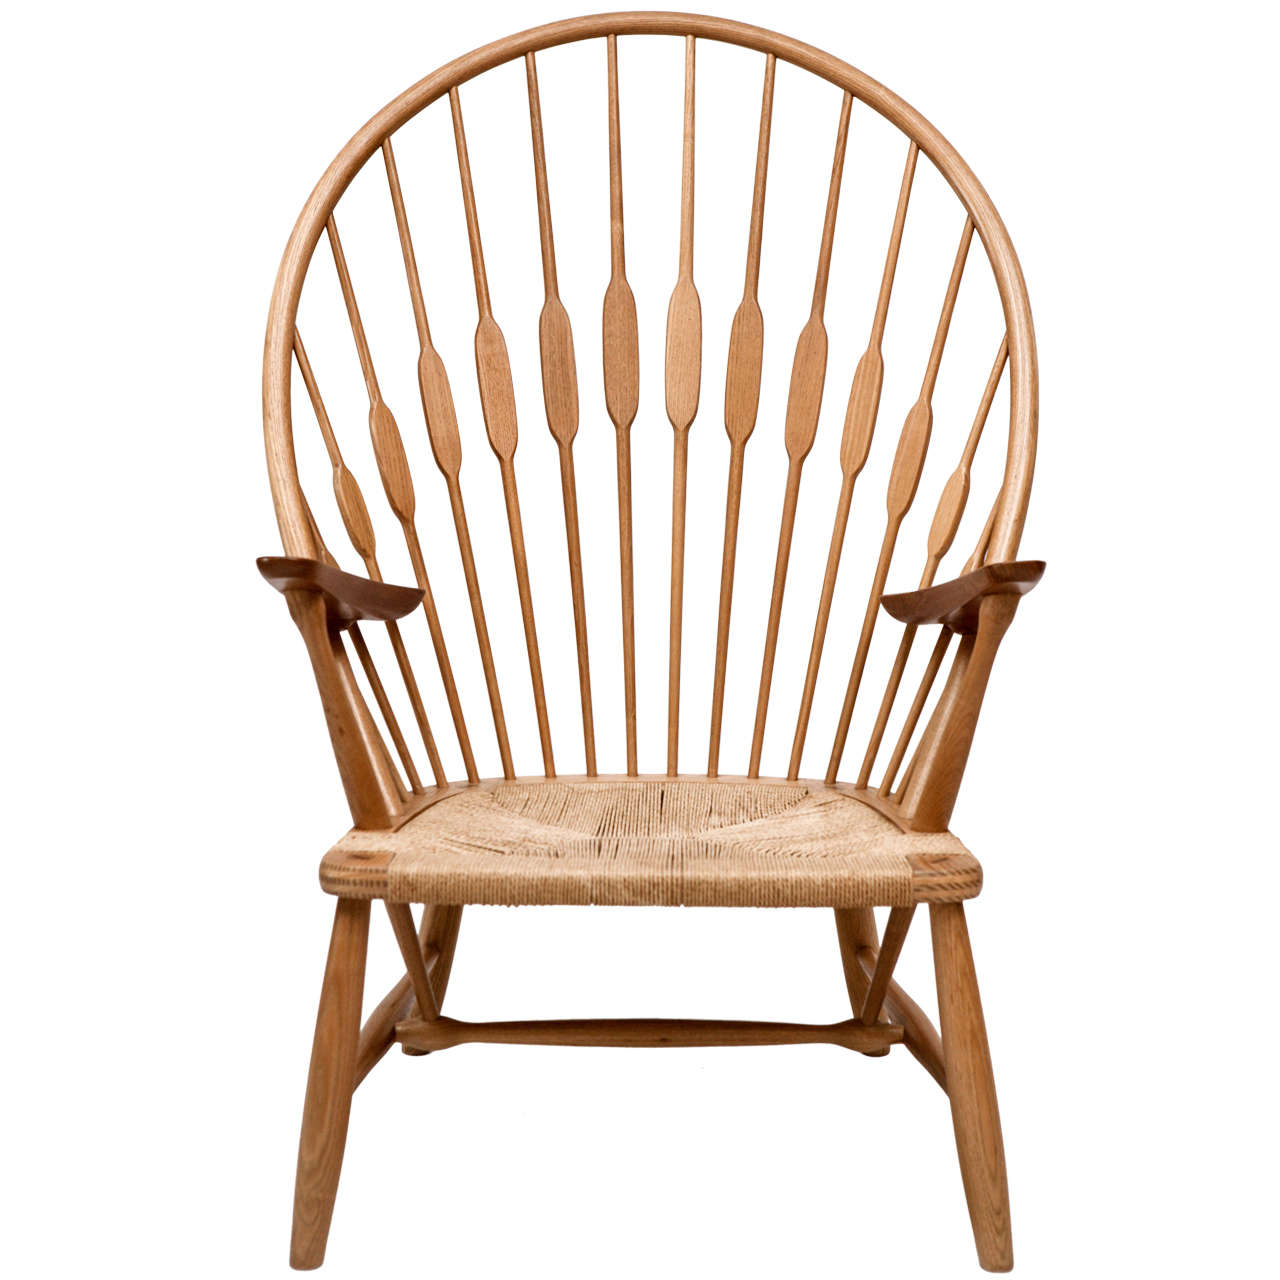 hans wegner peacock chair for sale at 1stdibs. Black Bedroom Furniture Sets. Home Design Ideas